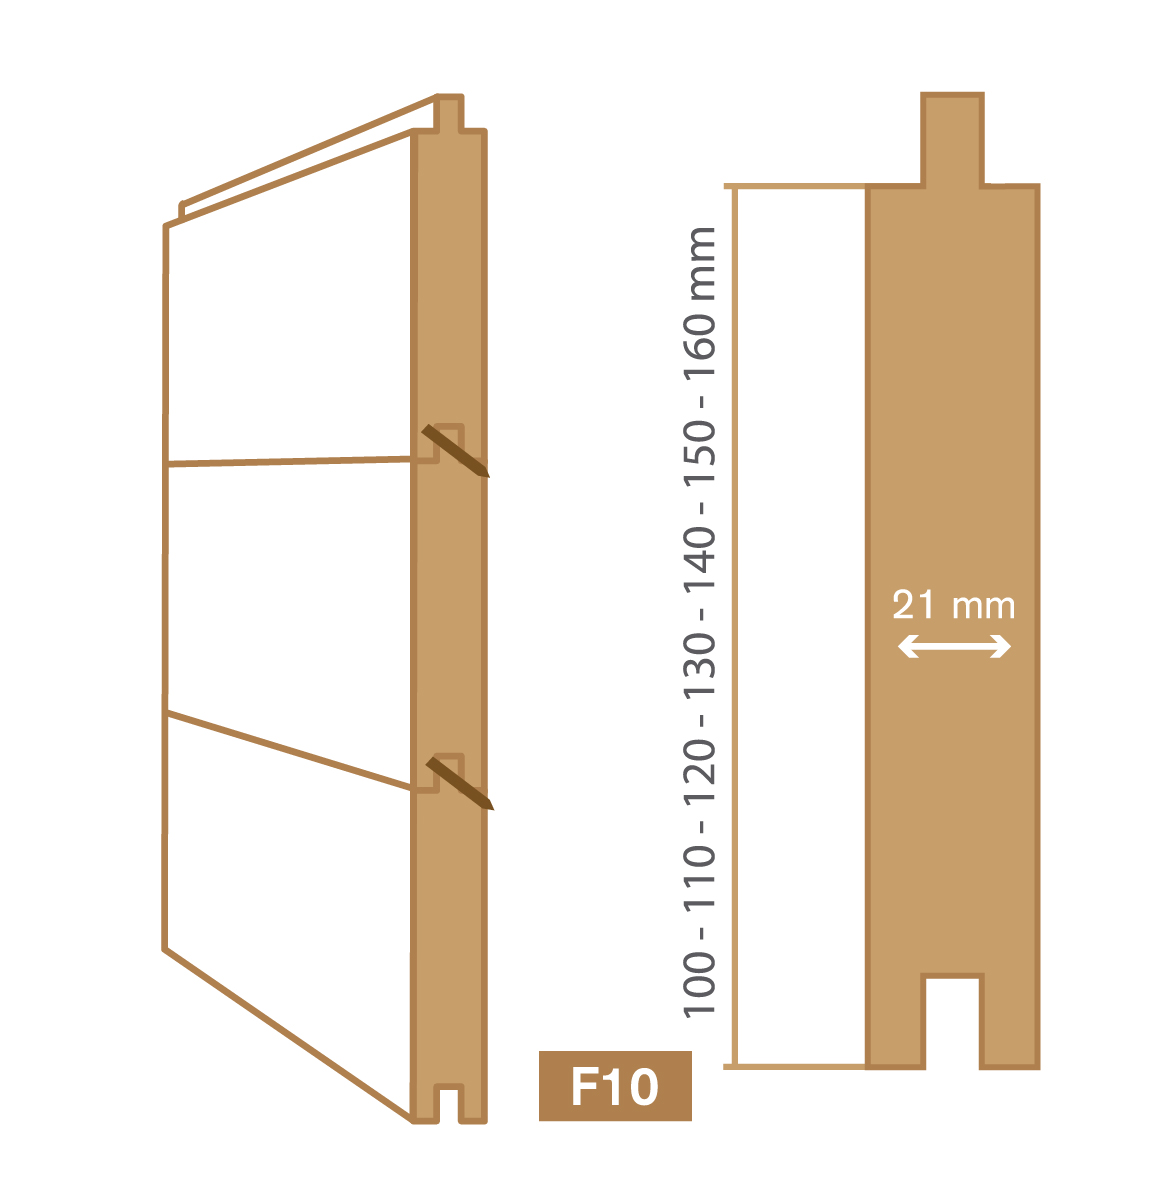 wooden cladding f10 type